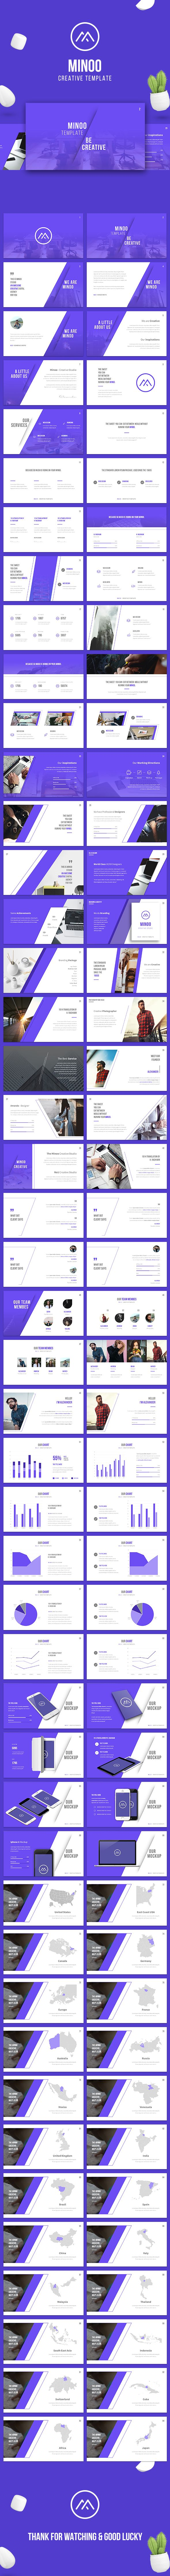 Minoo - Keynote Creative Template. Download here: https://graphicriver.net/item/minoo-keynote-creative-template/17444871?ref=ksioks